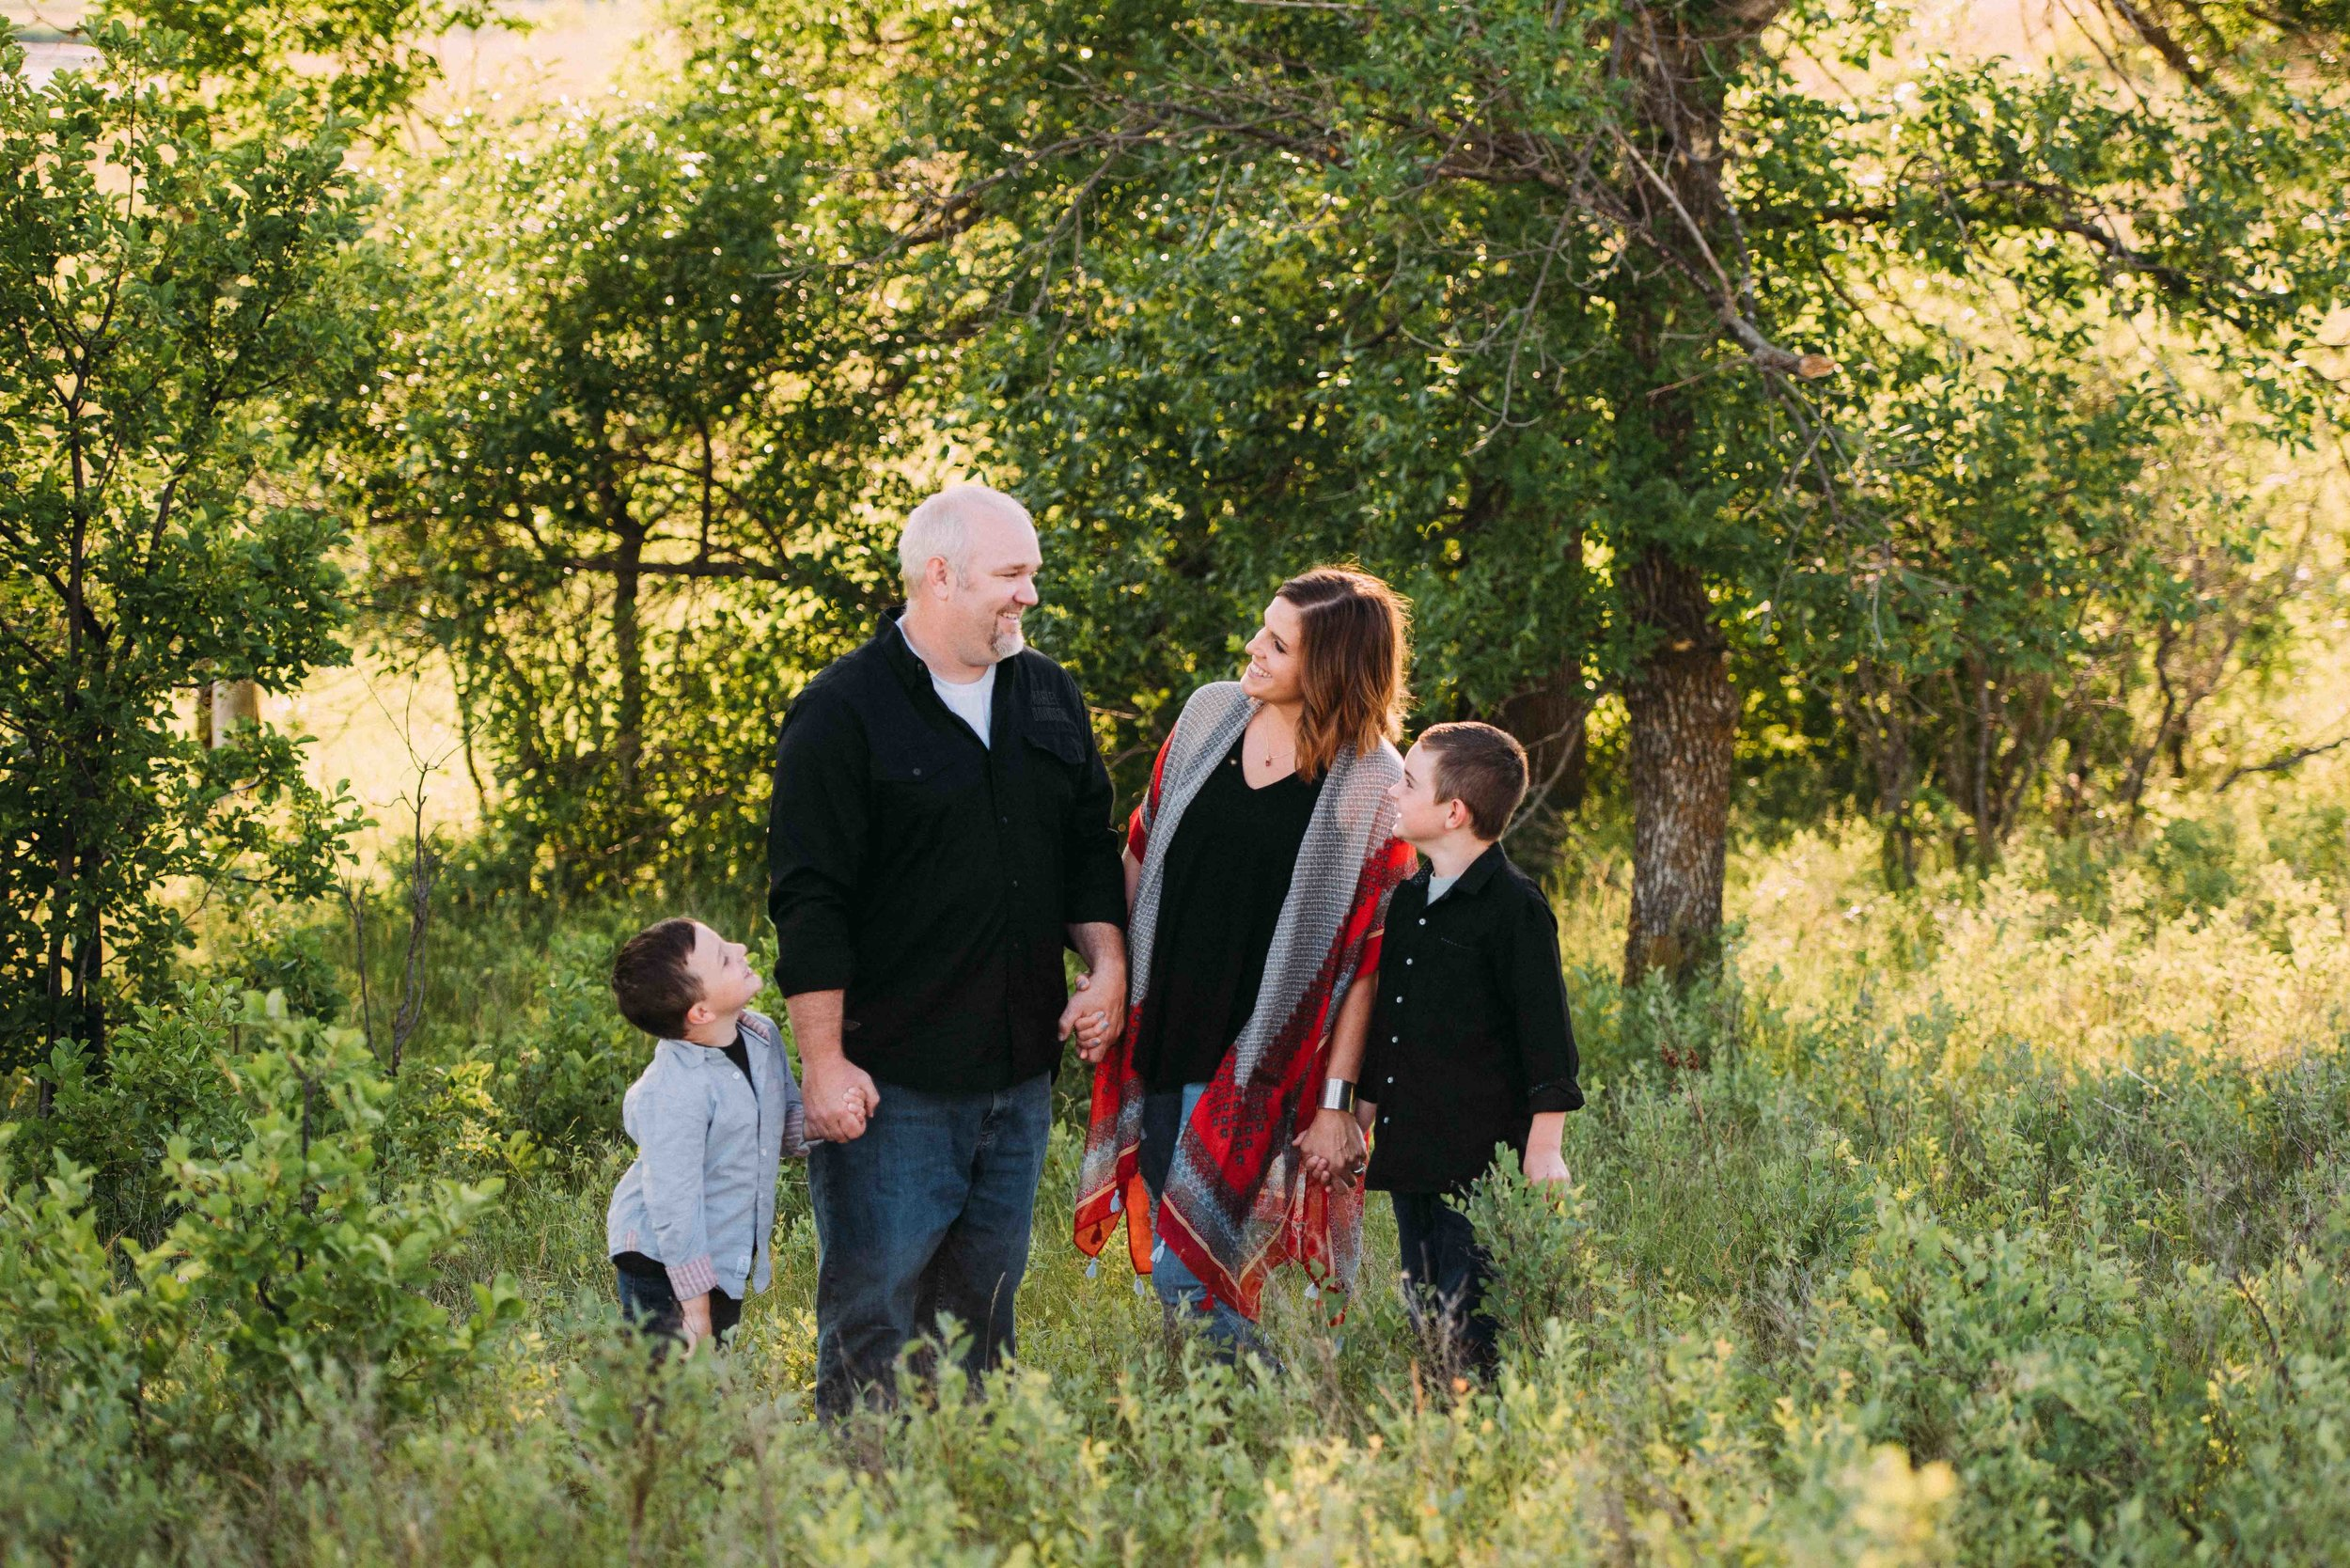 WEB - debi williams debirae photography photos photo families family couple enagements maternity baby newborn portraits portrait colorado wyoming North dakota-4378.jpg